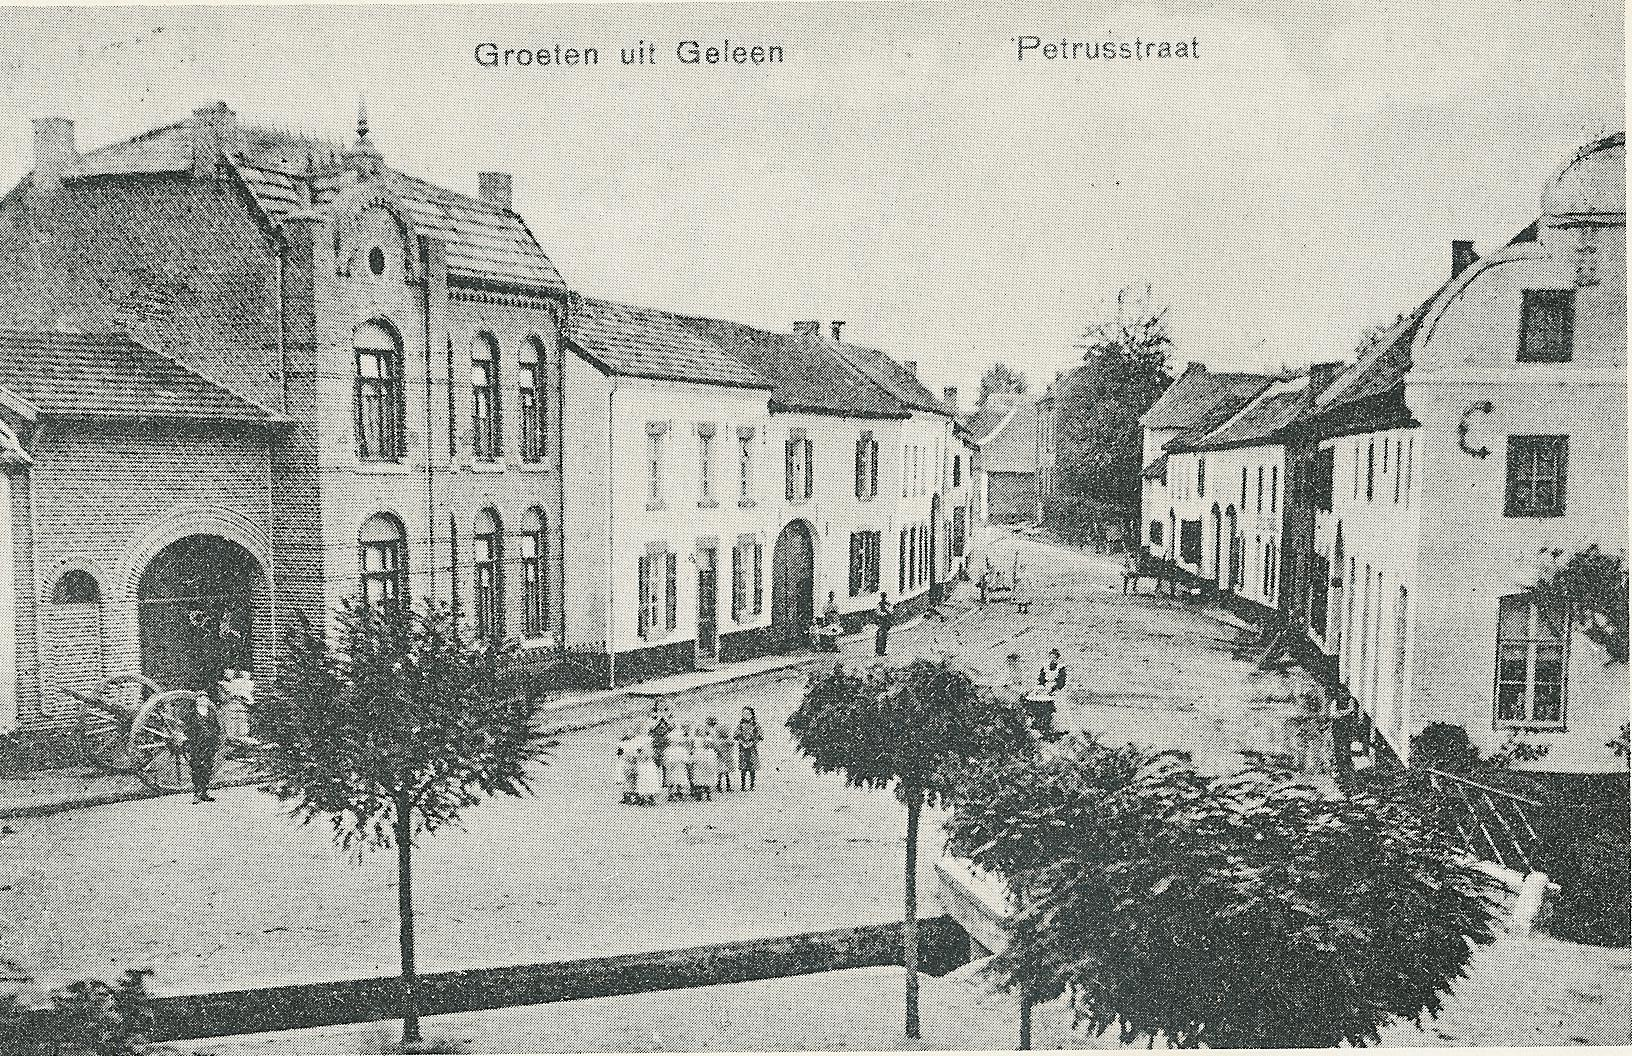 Blik in de Pieterstraat, foto rond 1910.